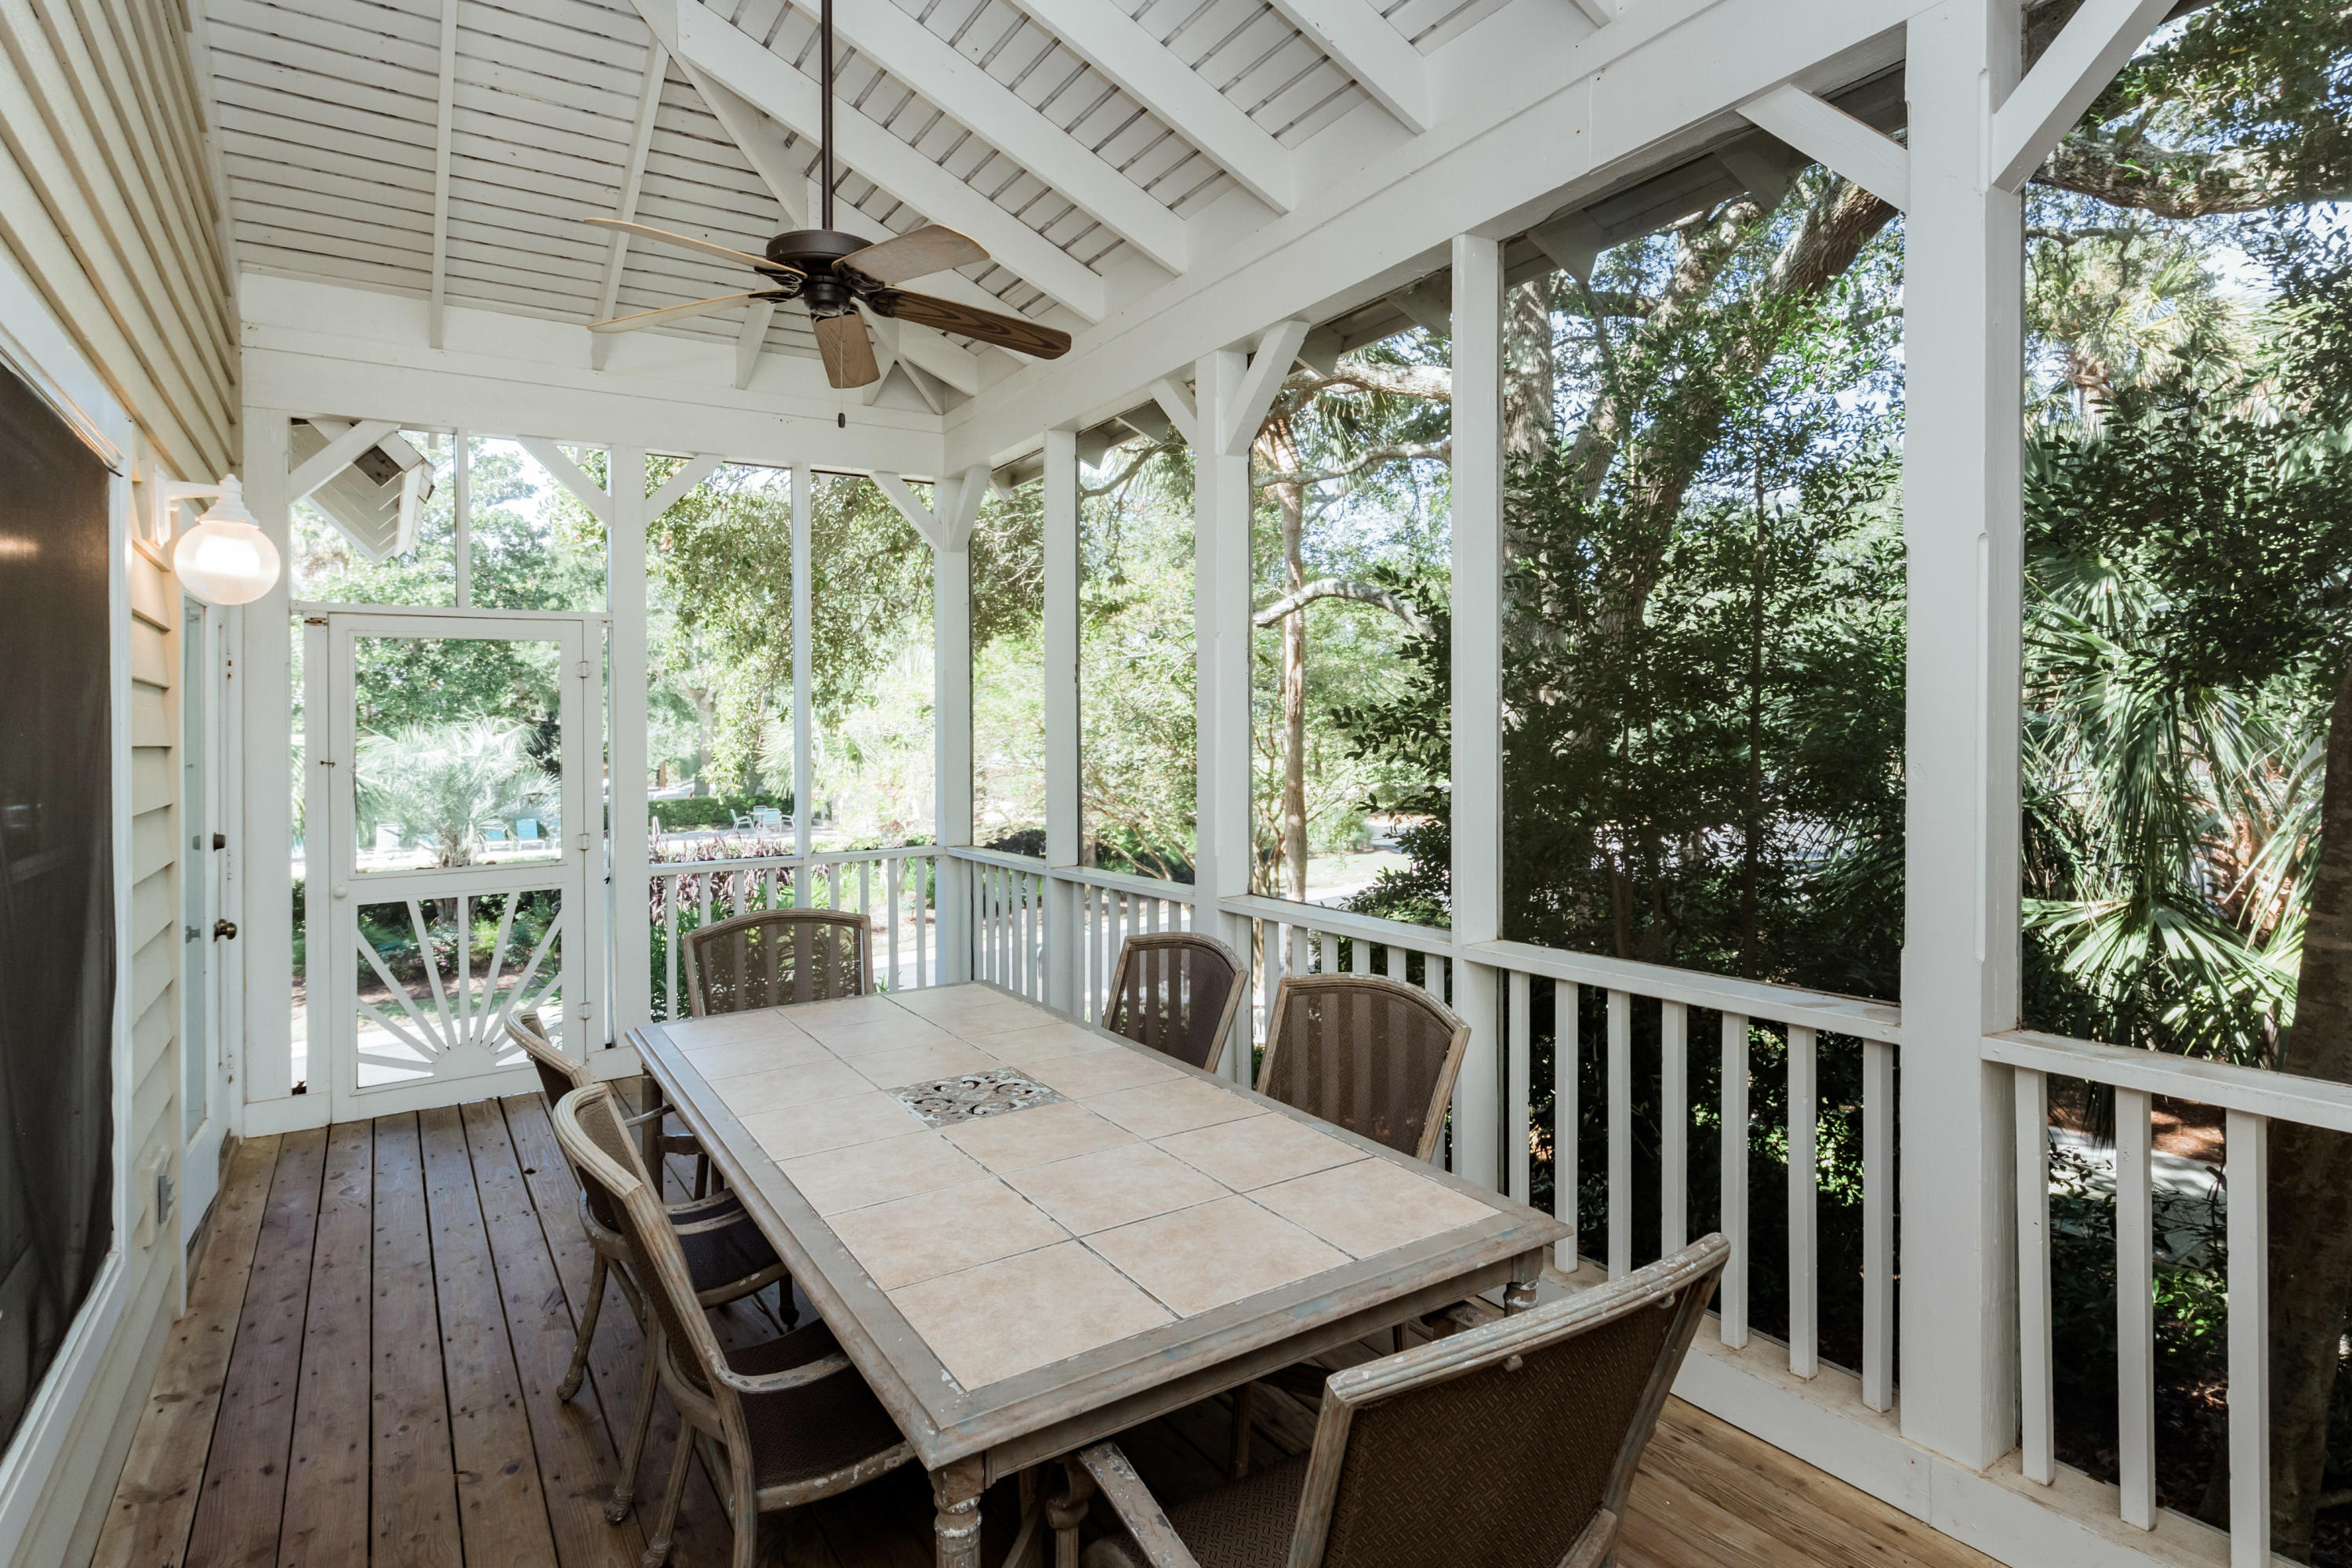 Kiawah Island Homes For Sale - 24 Atlantic Beach, Kiawah Island, SC - 42